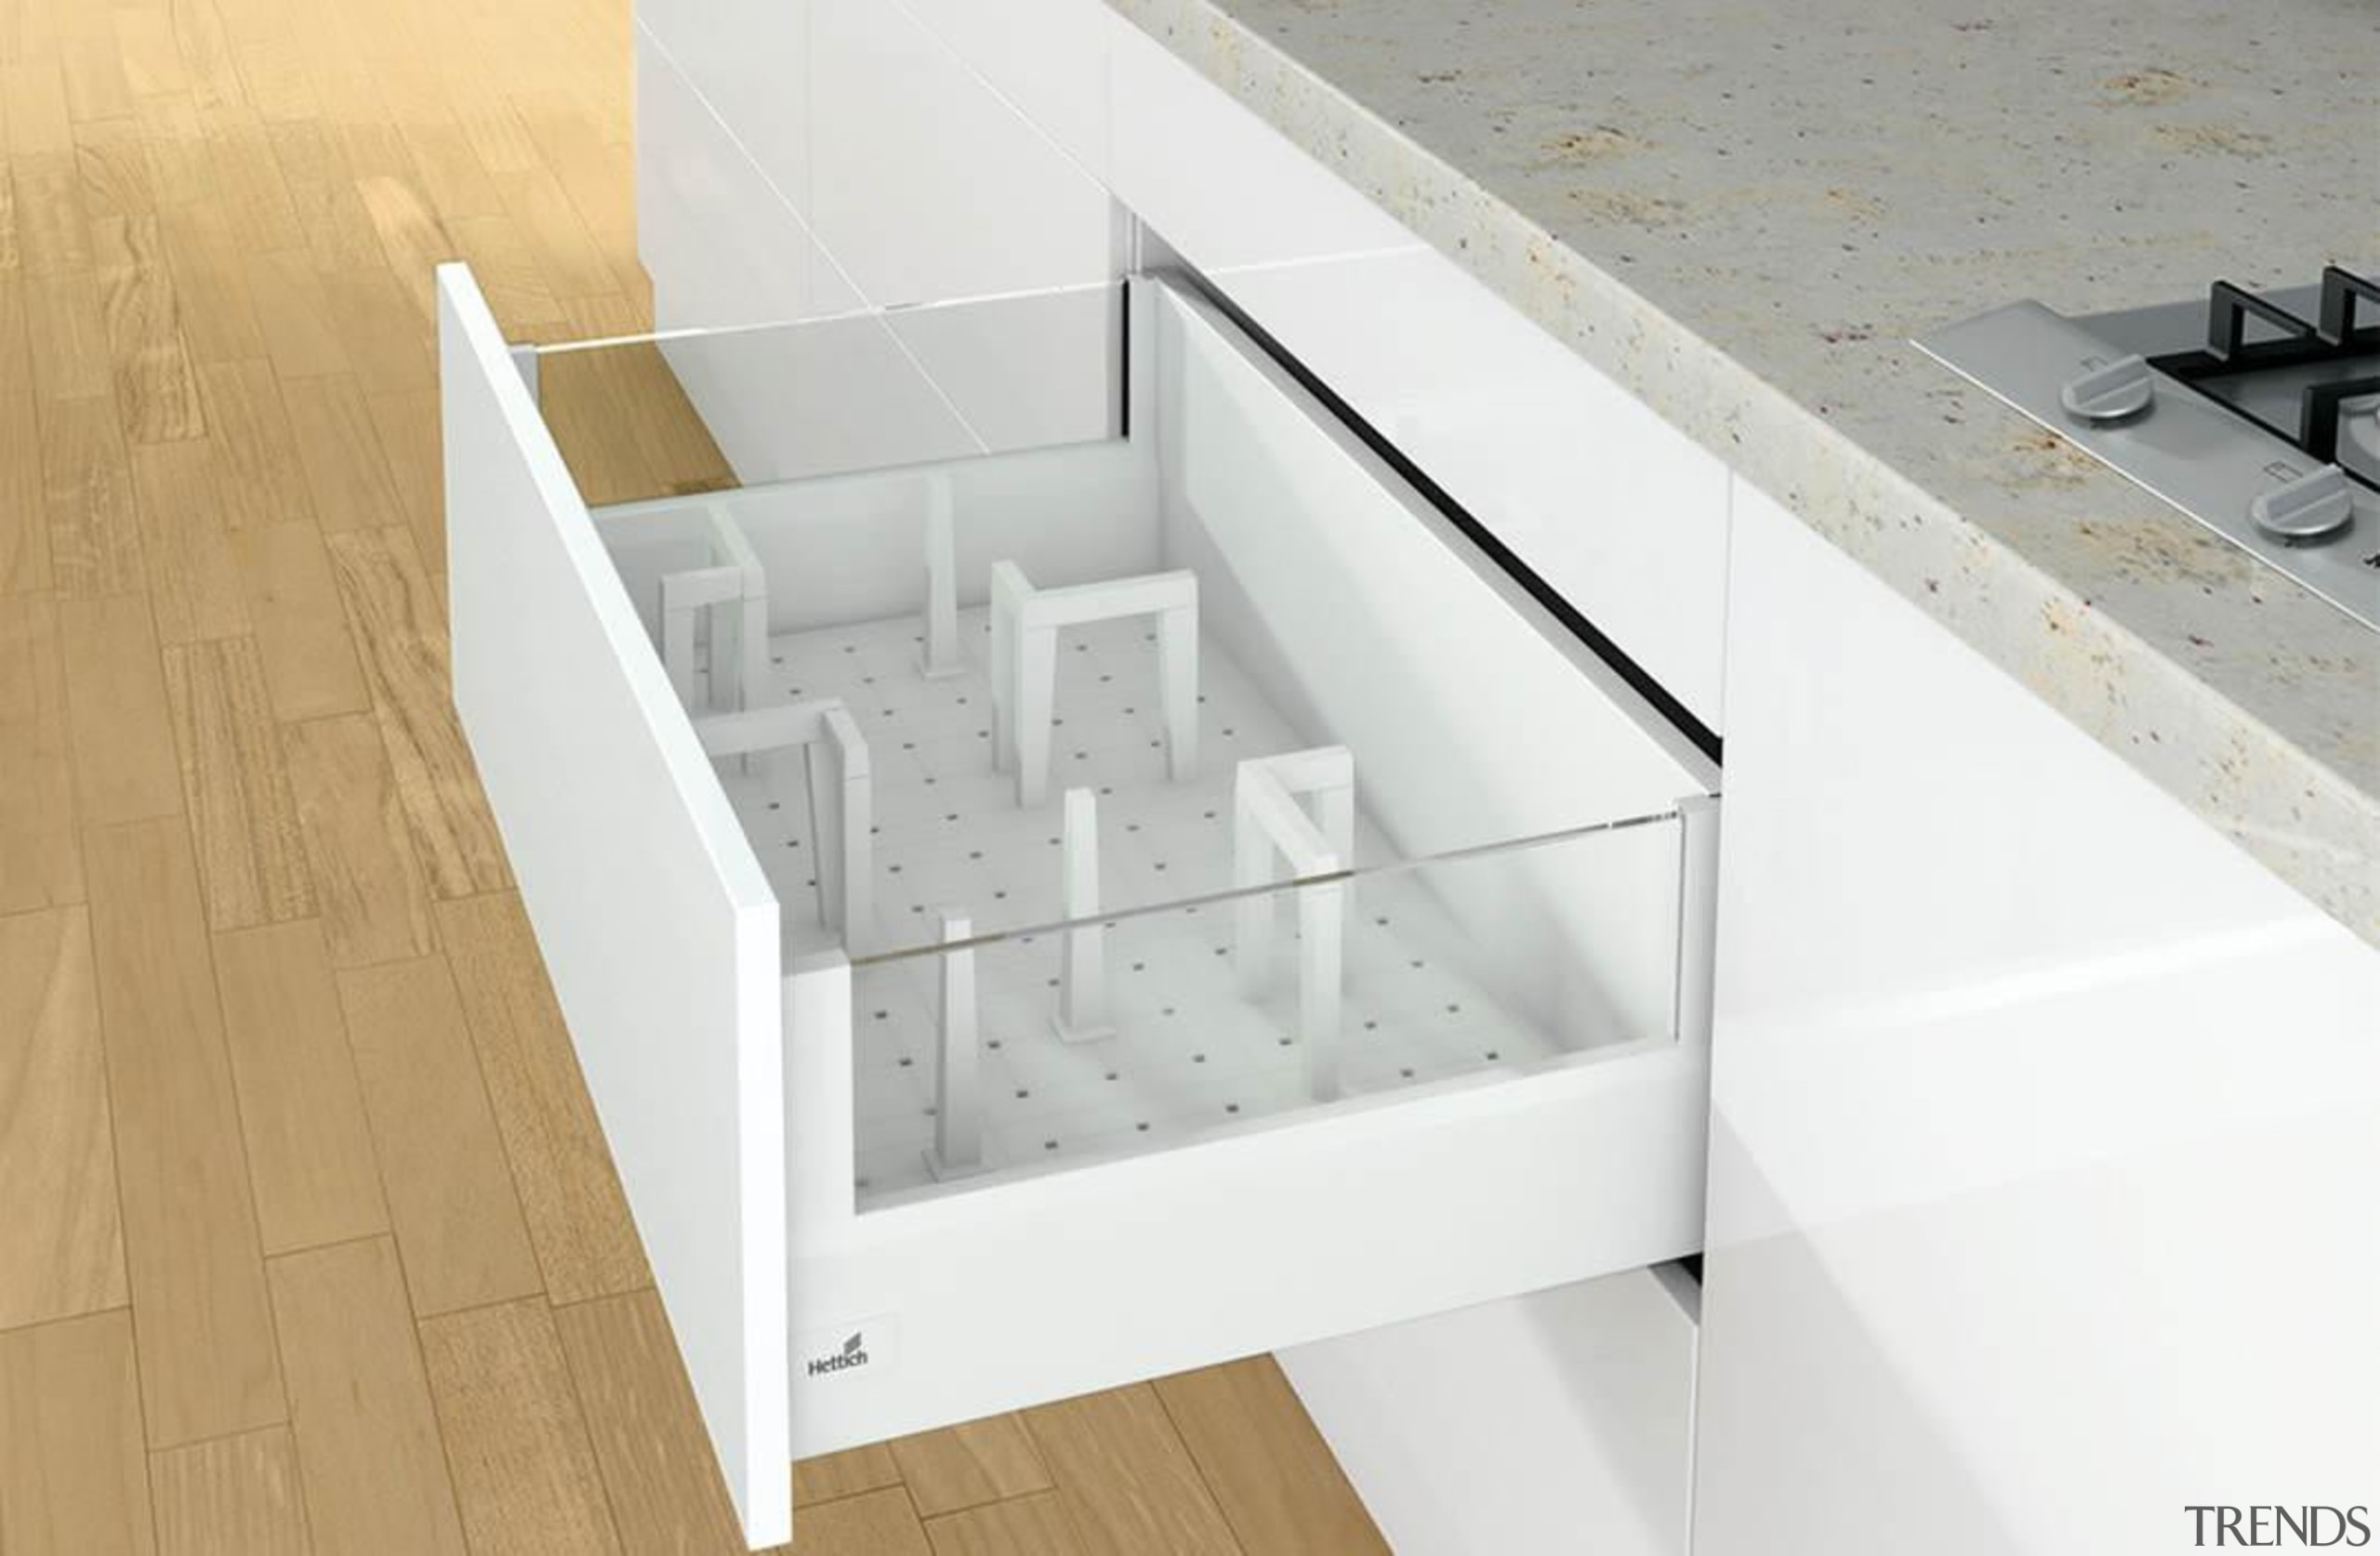 Internal Drawer Organisation - Internal Drawer Organisation - drawer, floor, furniture, product, product design, sink, tap, white